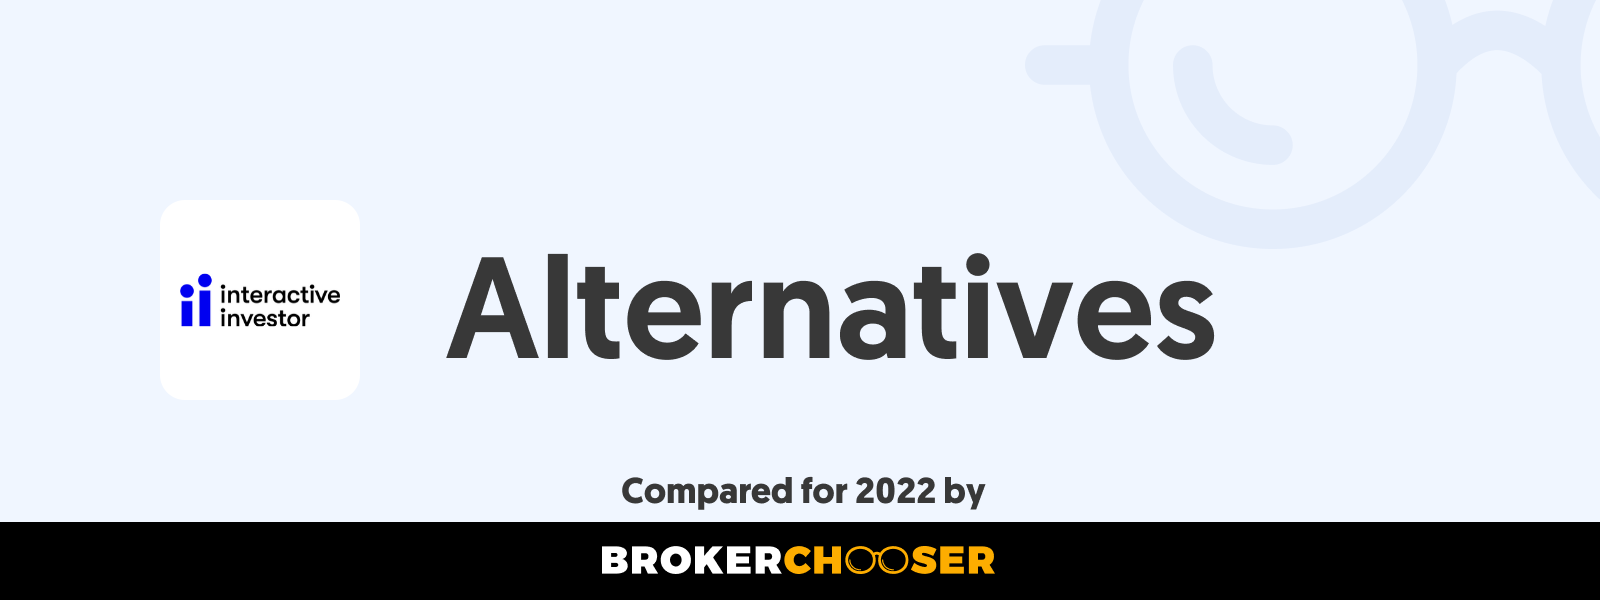 Interactive Investor Alternatives